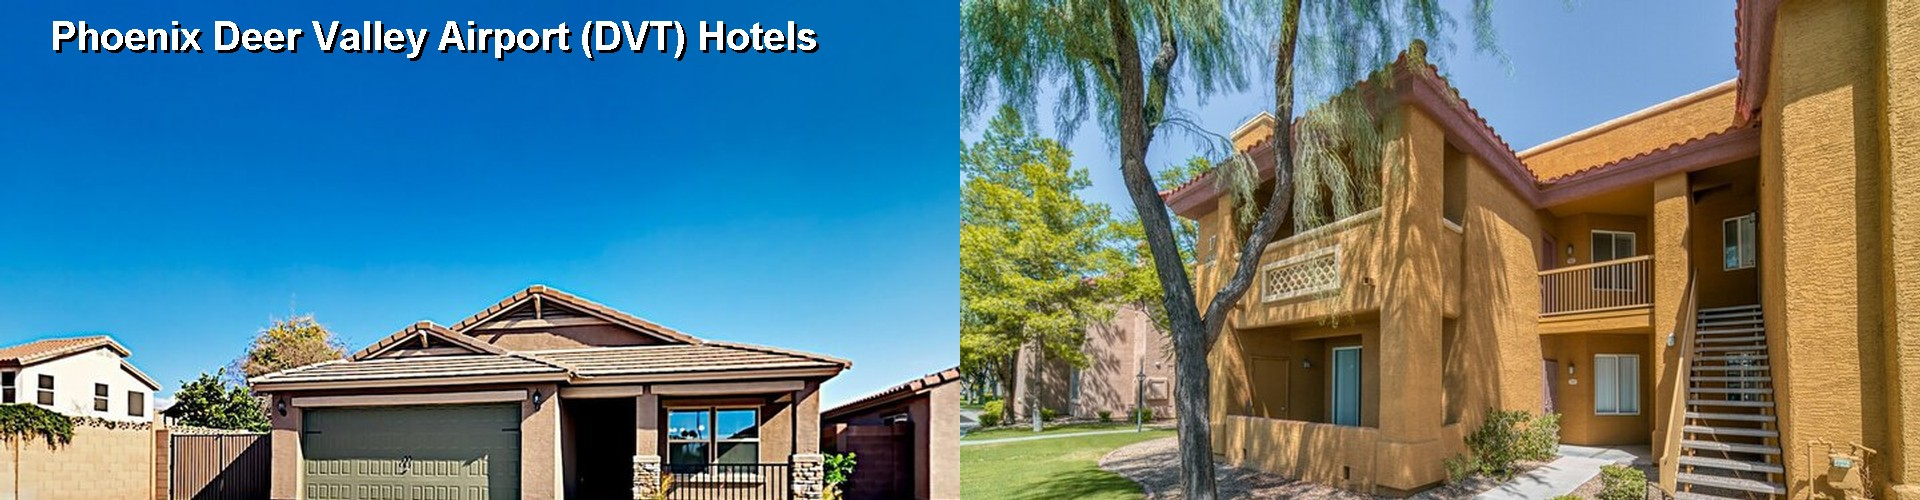 4 Best Hotels near Phoenix Deer Valley Airport (DVT)